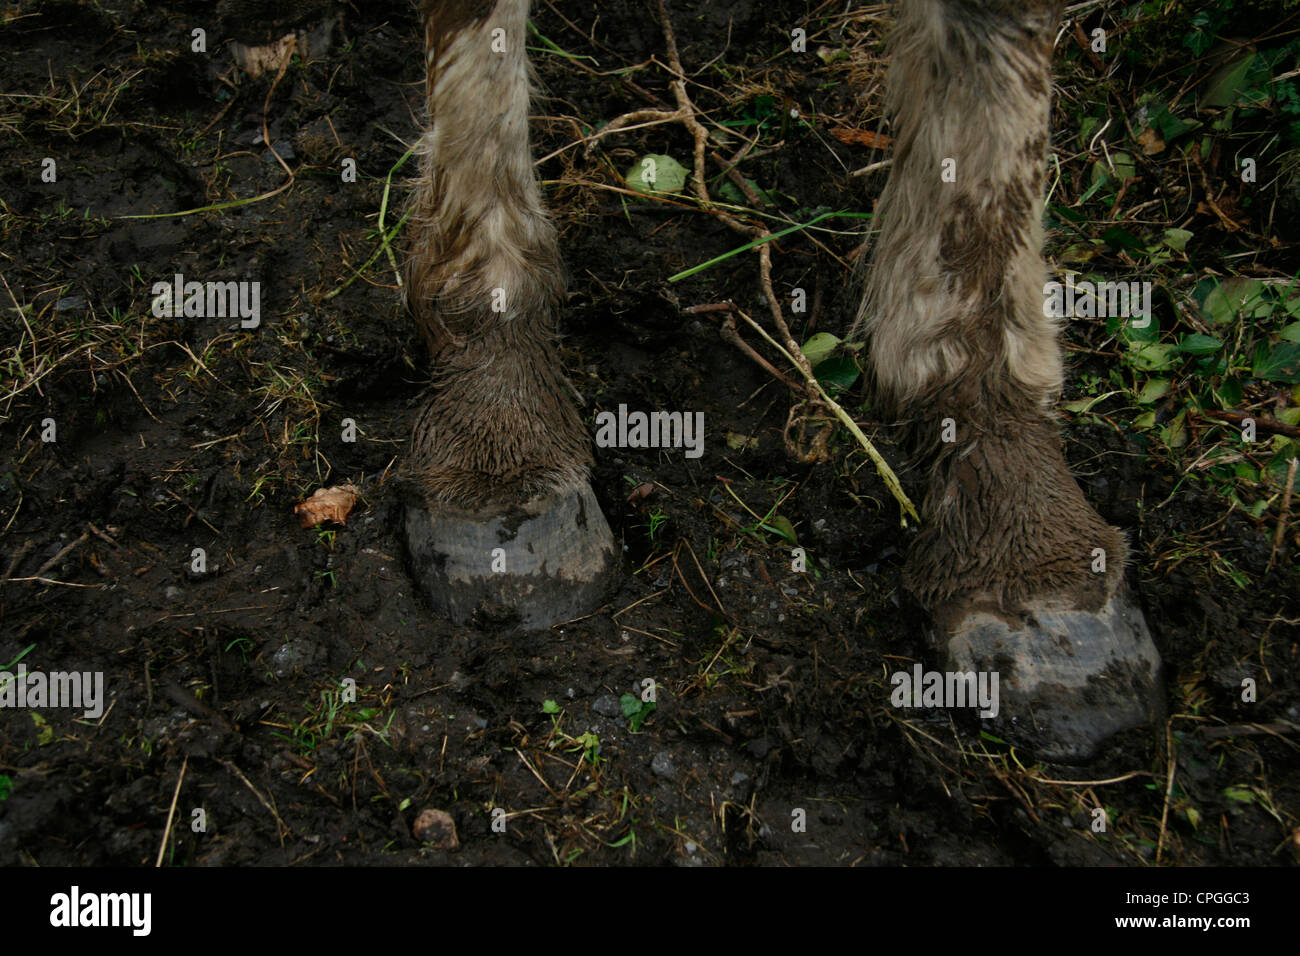 Horse hooves in mud. - Stock Image